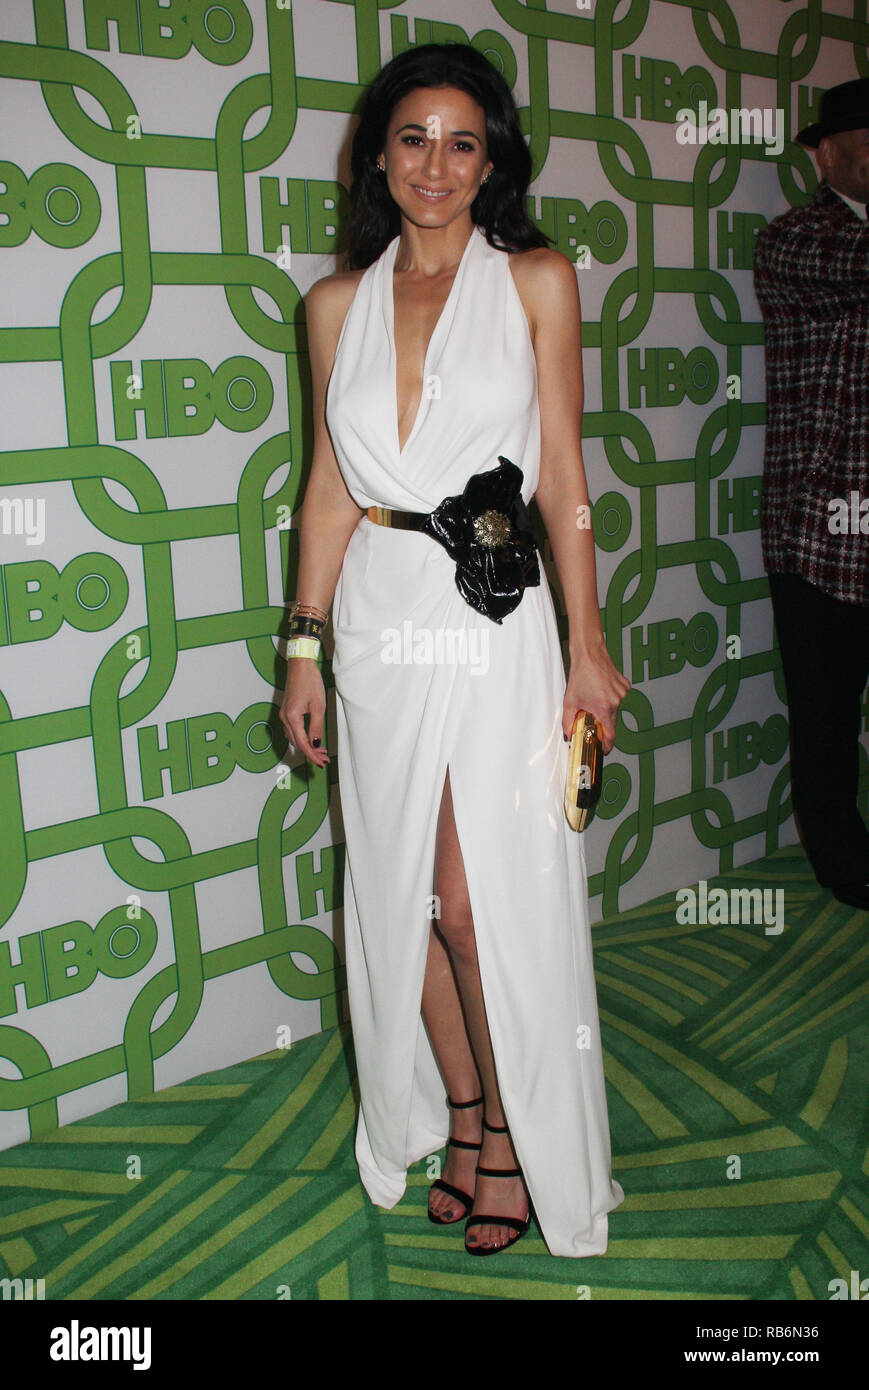 Emmanuelle Chriqui  01/06/2019 The 76th Annual Golden Globe Awards HBO After Party held at the Circa 55 Restaurant at The Beverly Hilton in Beverly Hills, CA   Photo: Cronos/Hollywood News Stock Photo